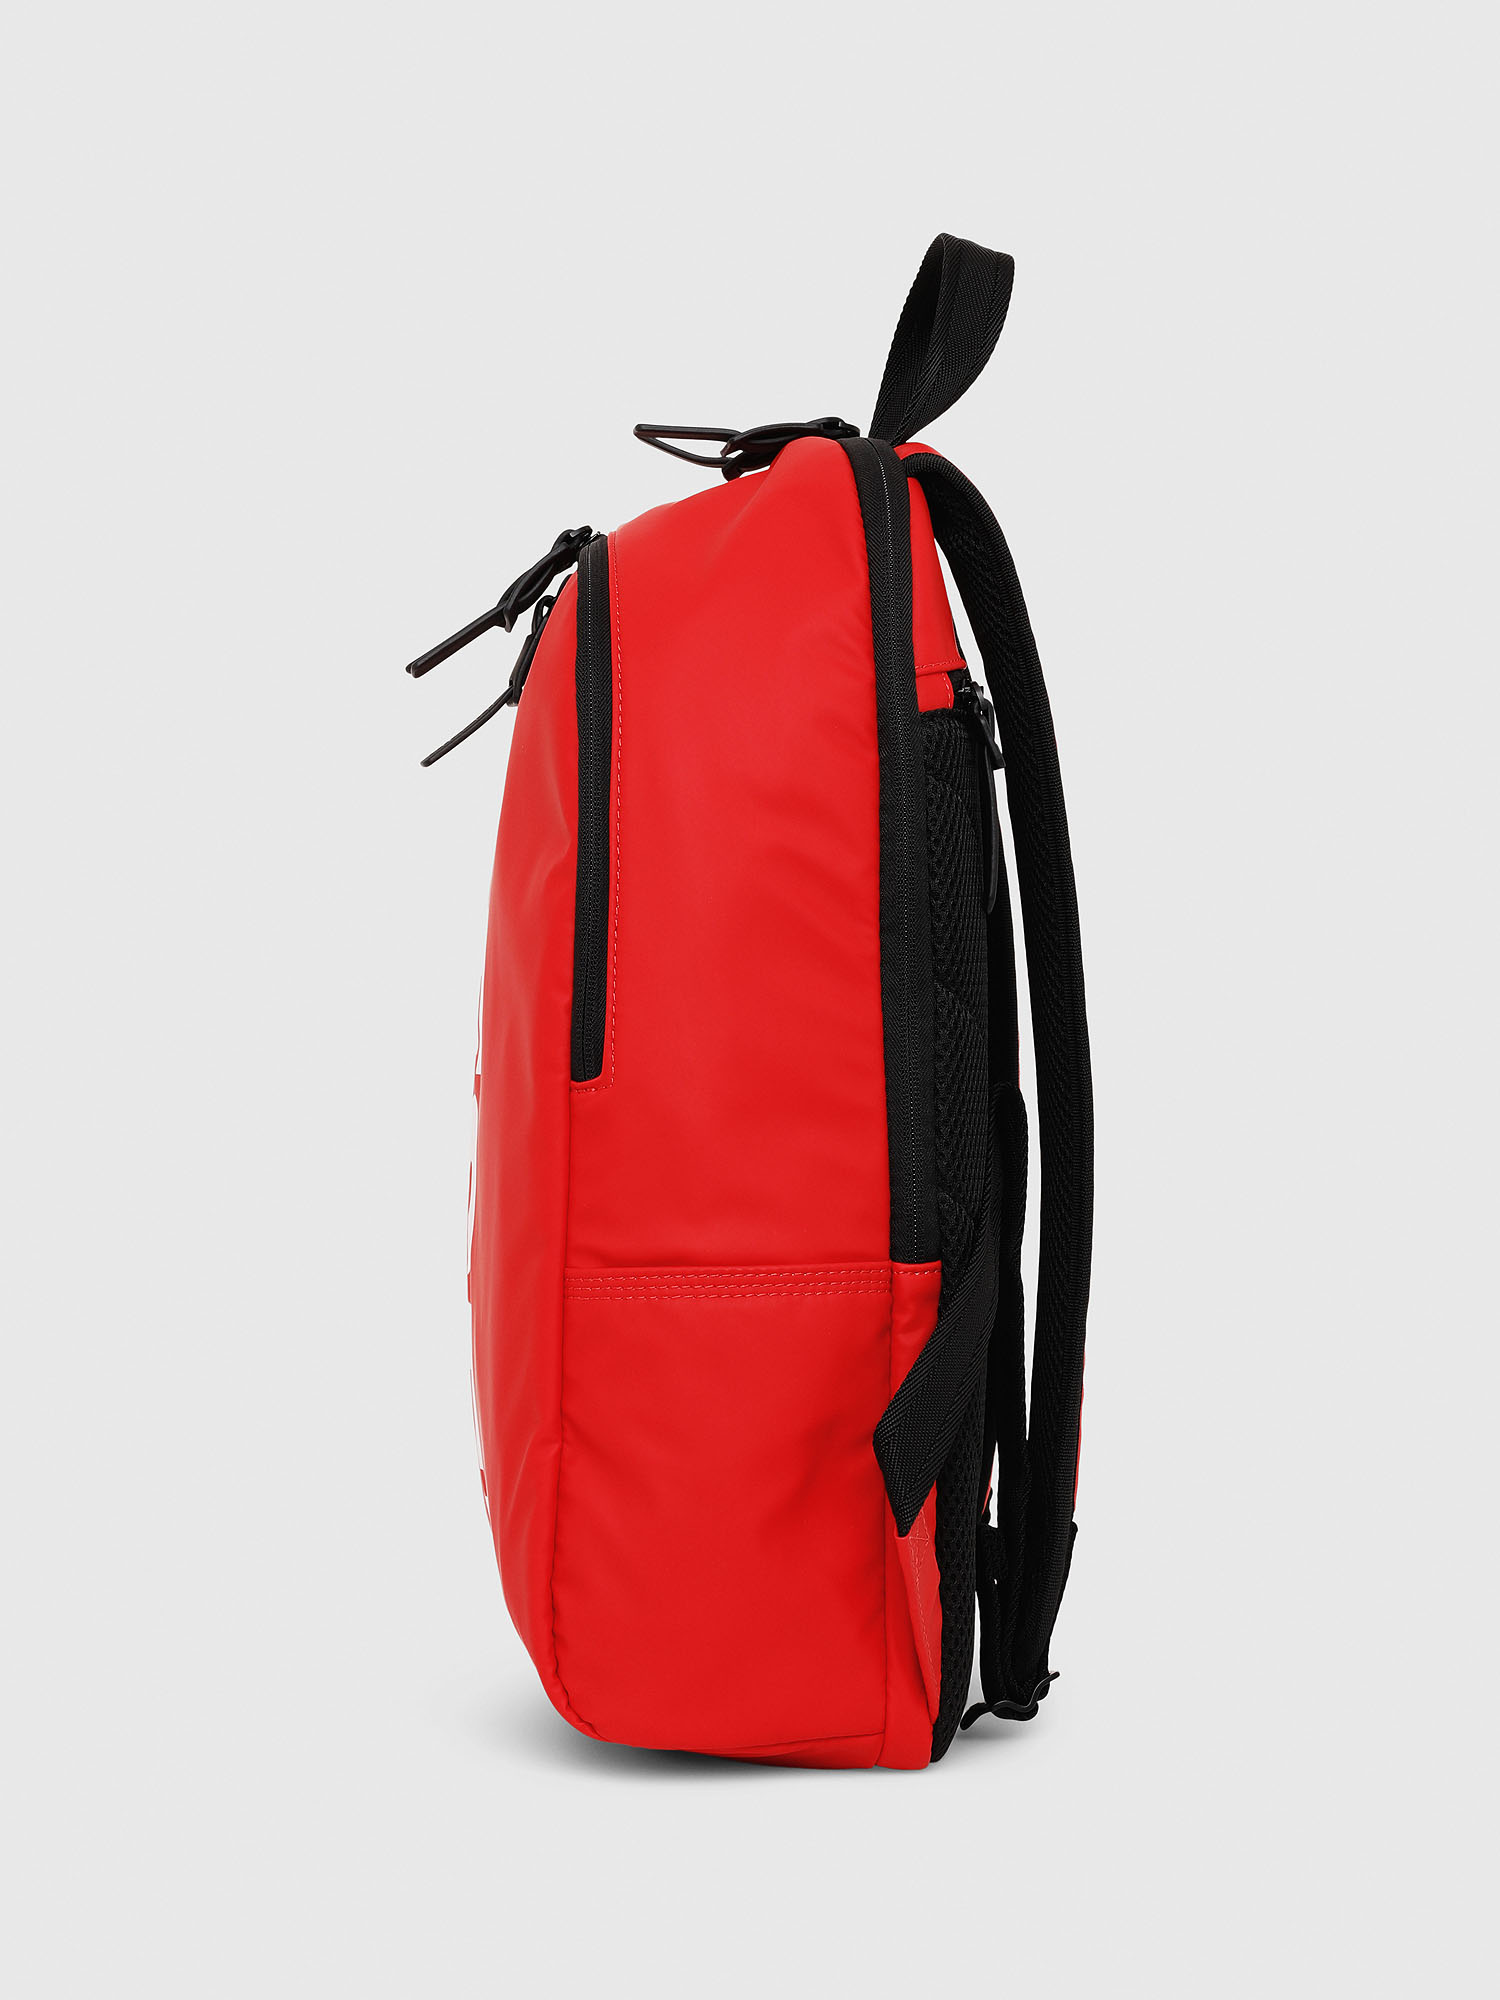 Diesel - BOLD BACK II,  - Backpacks - Image 3